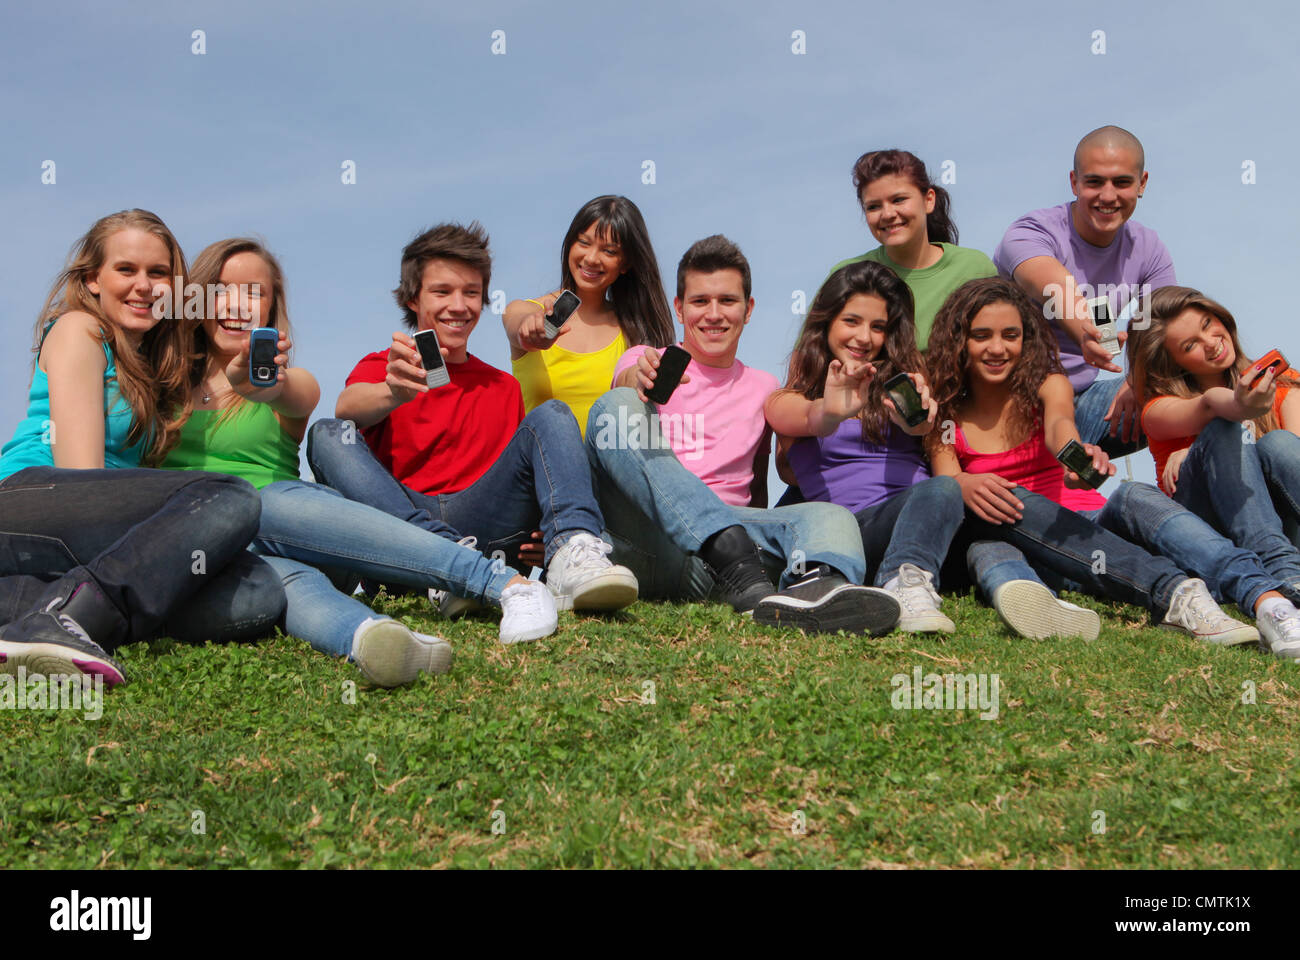 happy group of  teens with cell phones - Stock Image